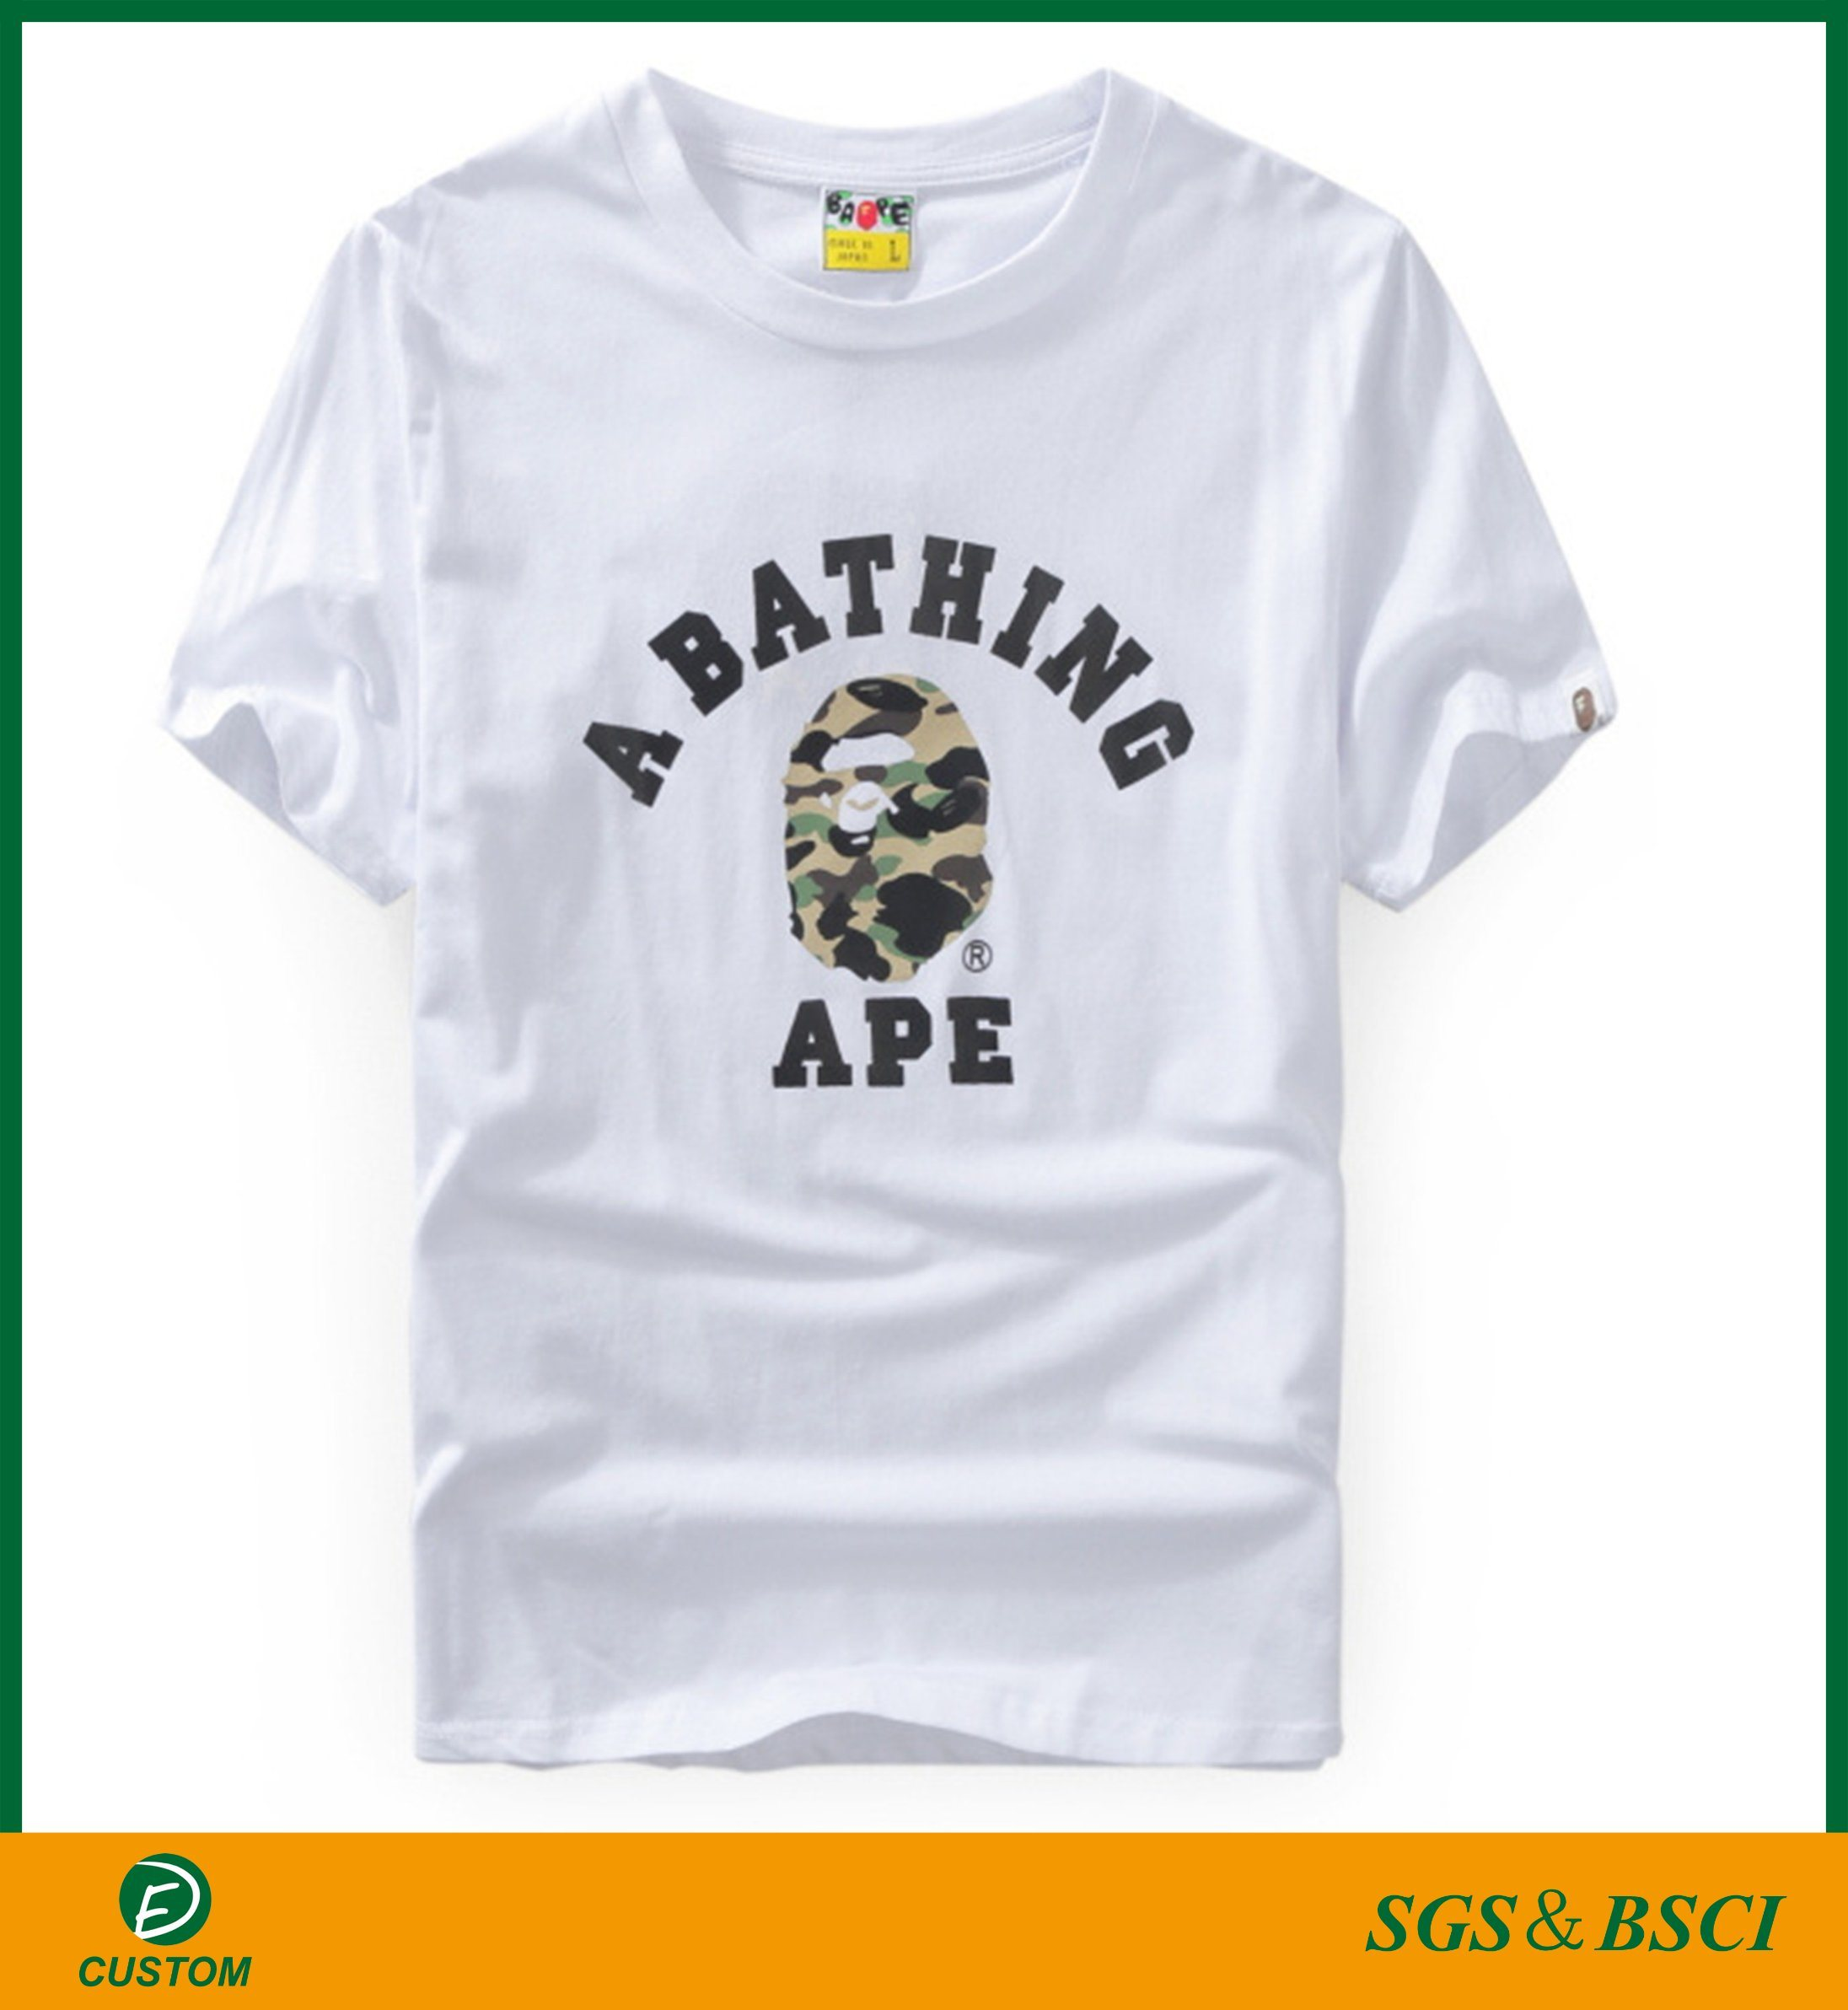 11d96631 China White T Shirt, White T Shirt Manufacturers, Suppliers, Price |  Made-in-China.com